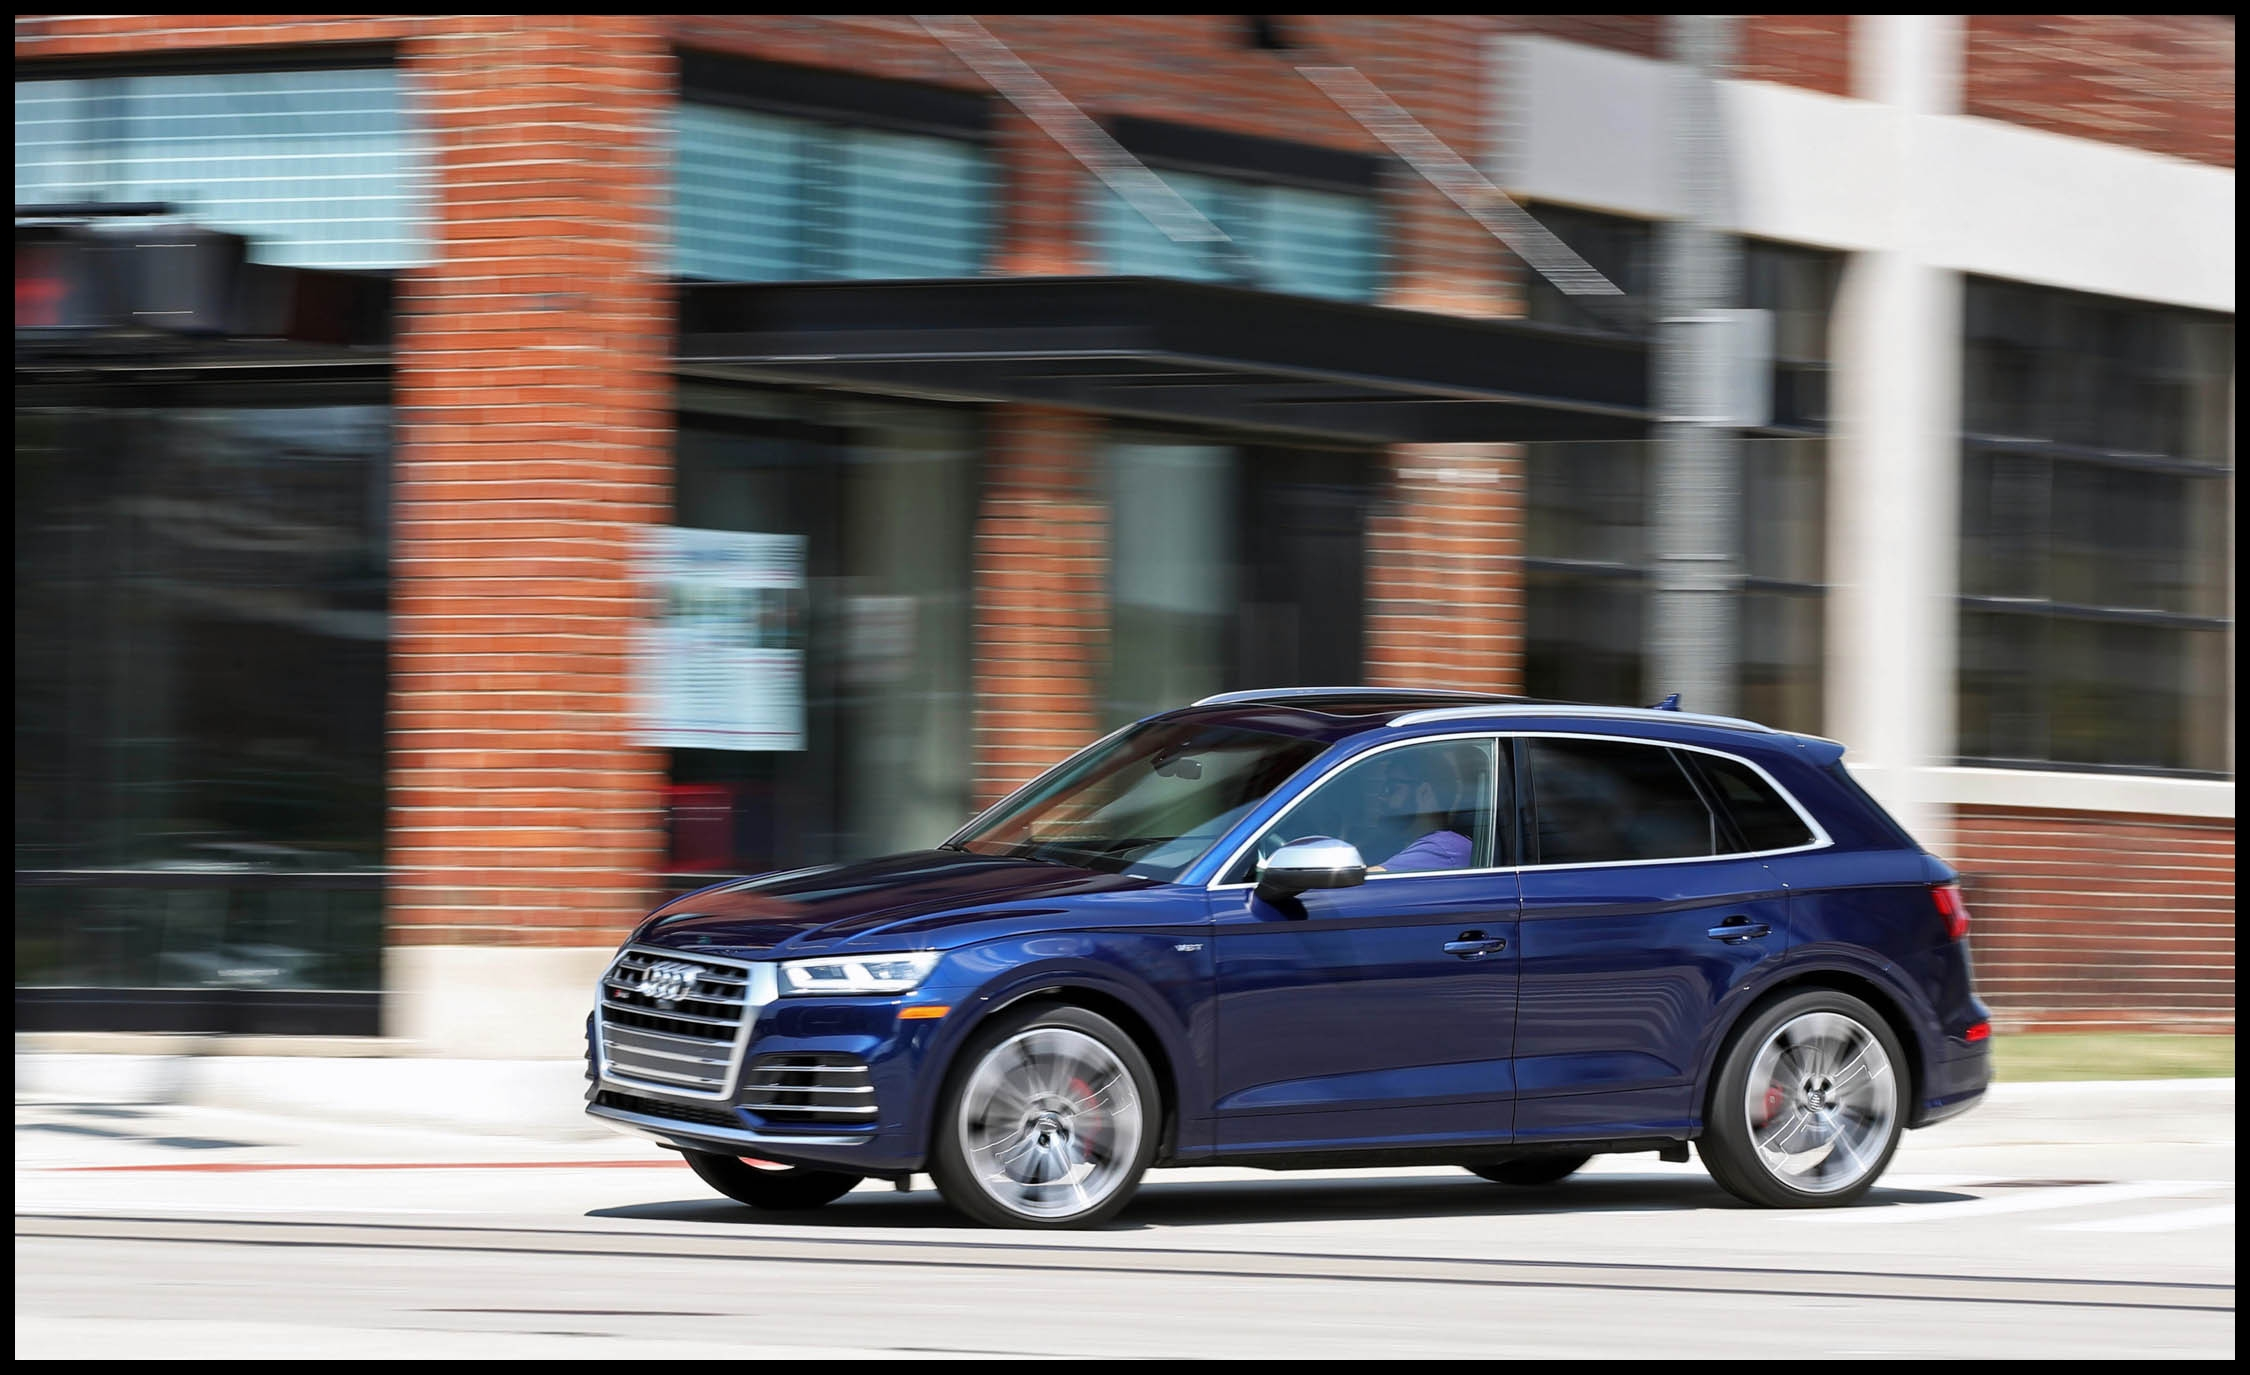 2019 Audi Driver assistance Package Unique 2018 Audi Sq5 Safety and Driver assistance Review